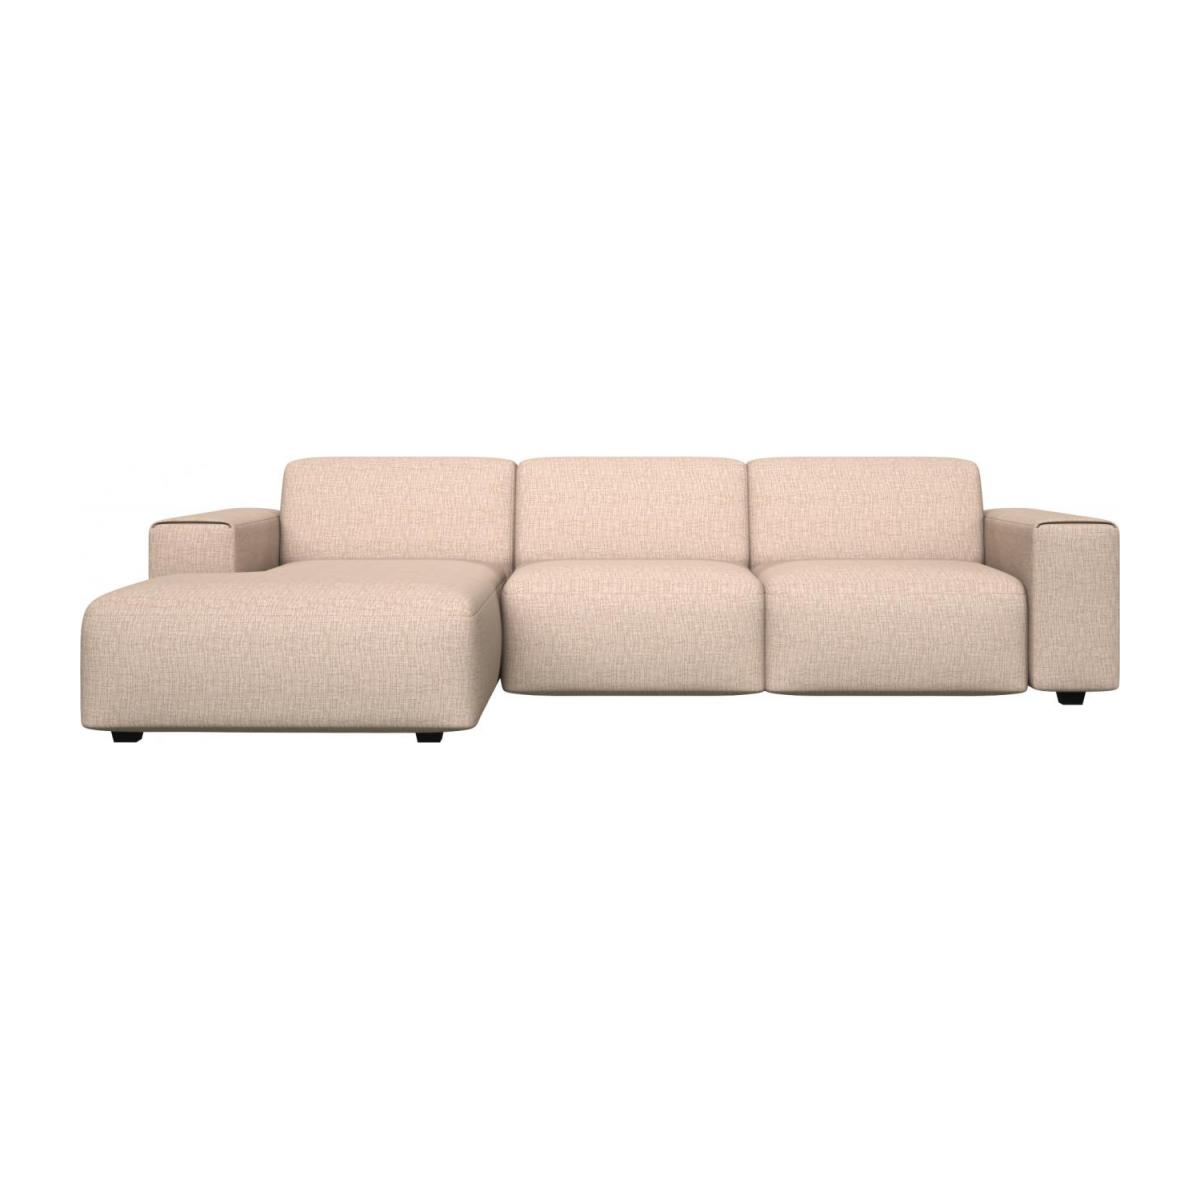 3 seater sofa with chaise longue on the left in Ancio fabric, nature n°3